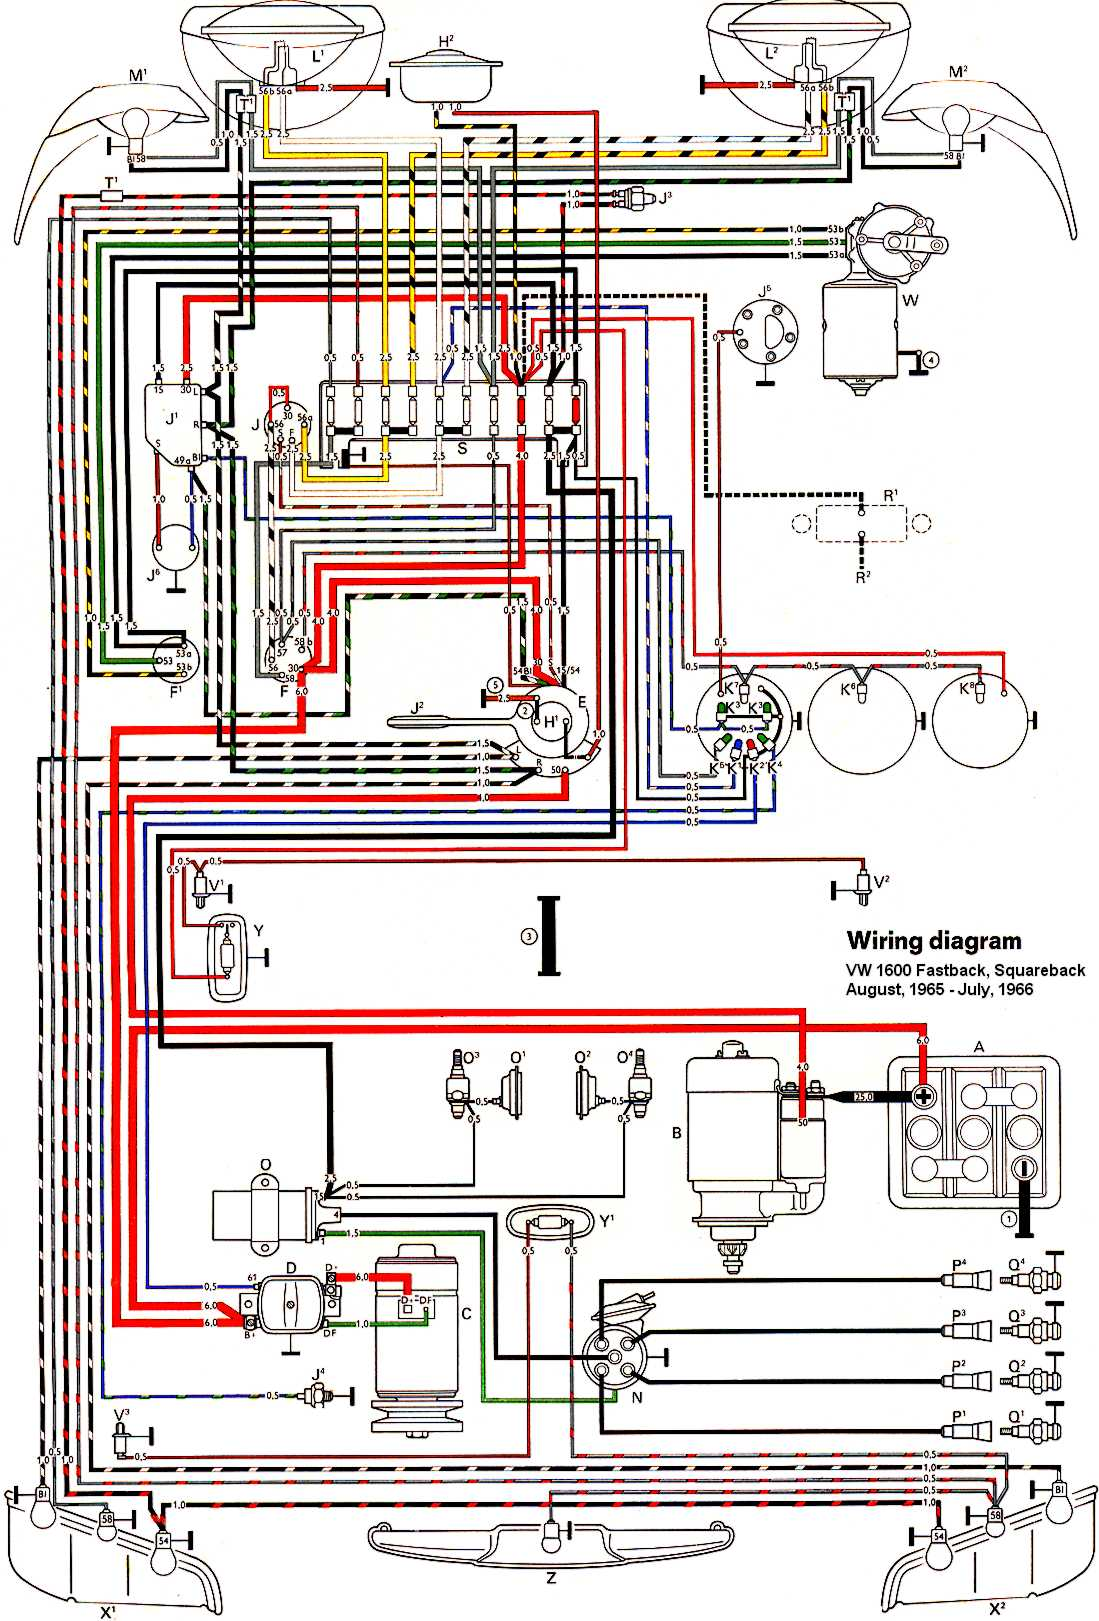 type3_1600_66 vw bus wiring diagram 1965 vw bus wiring diagram \u2022 wiring diagrams 1970 vw bug wiring diagram at crackthecode.co